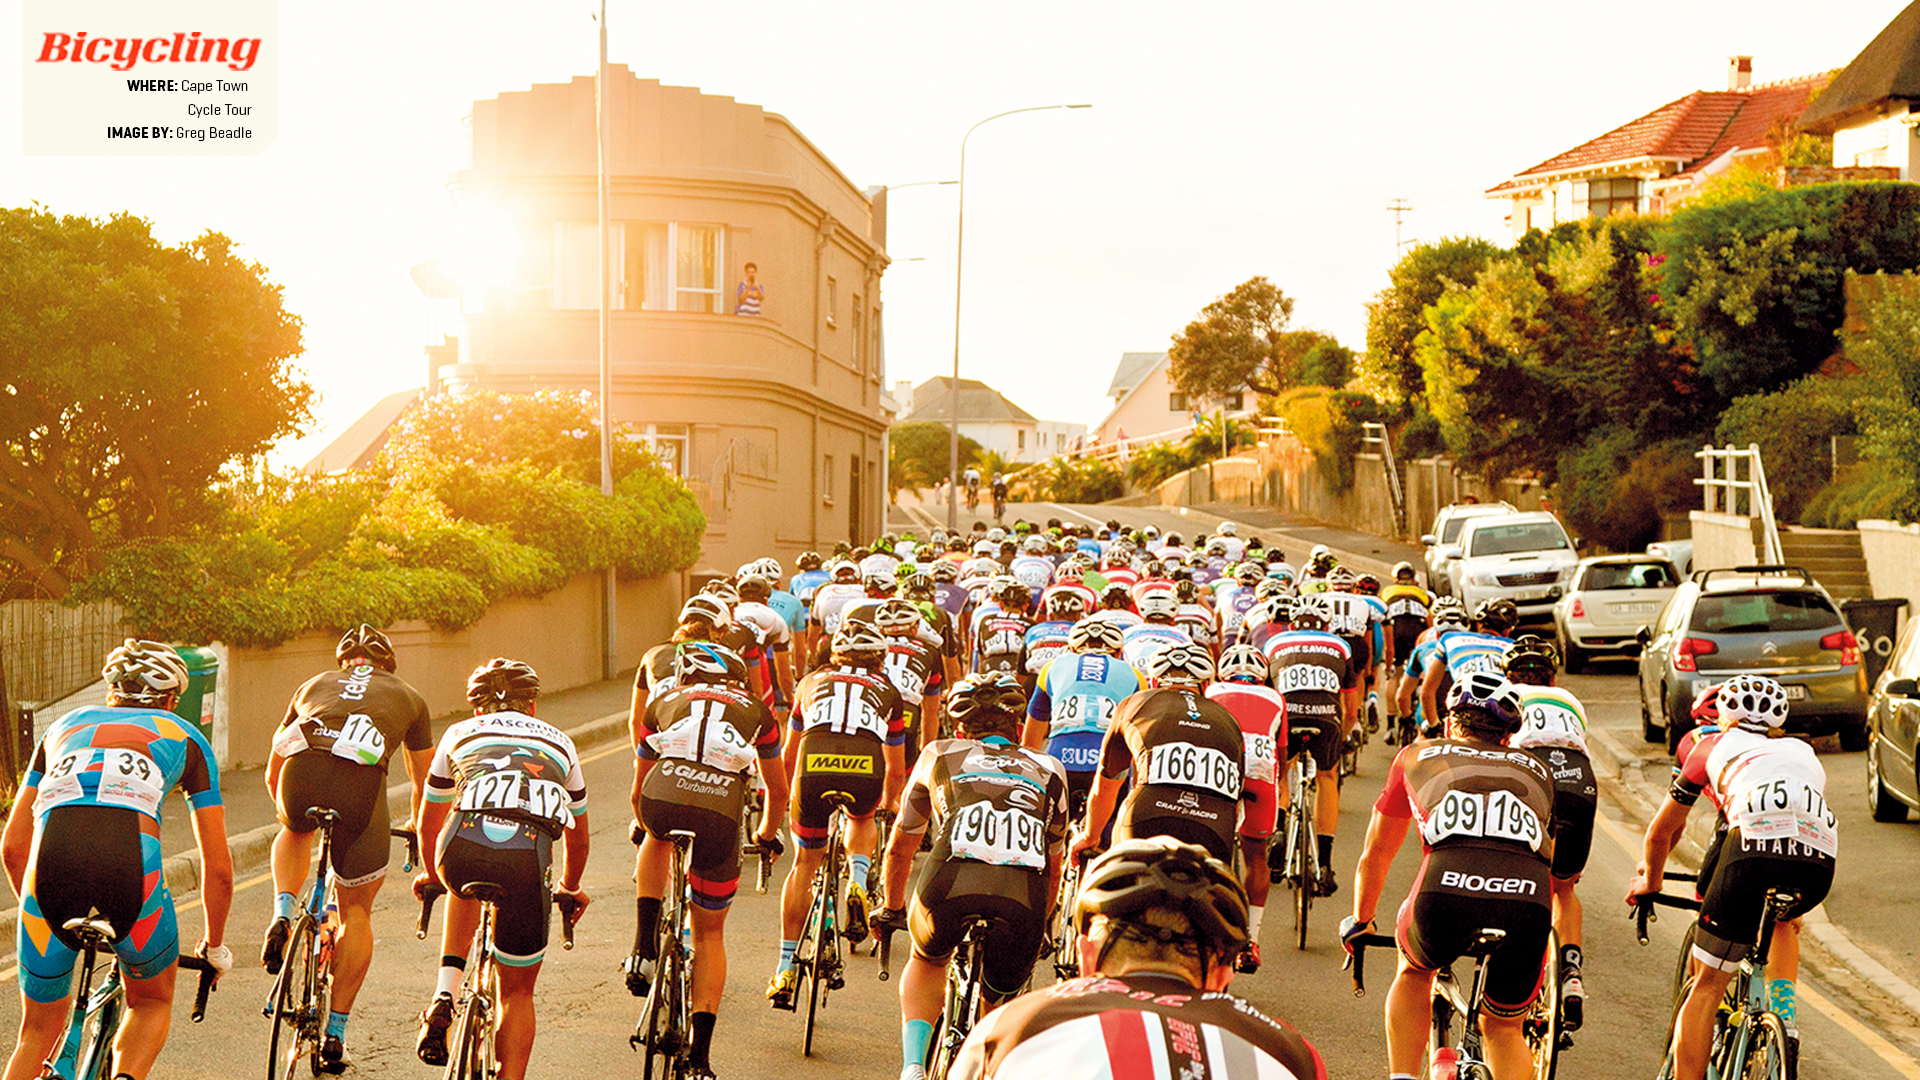 Cycling Wallpapers Bicycling